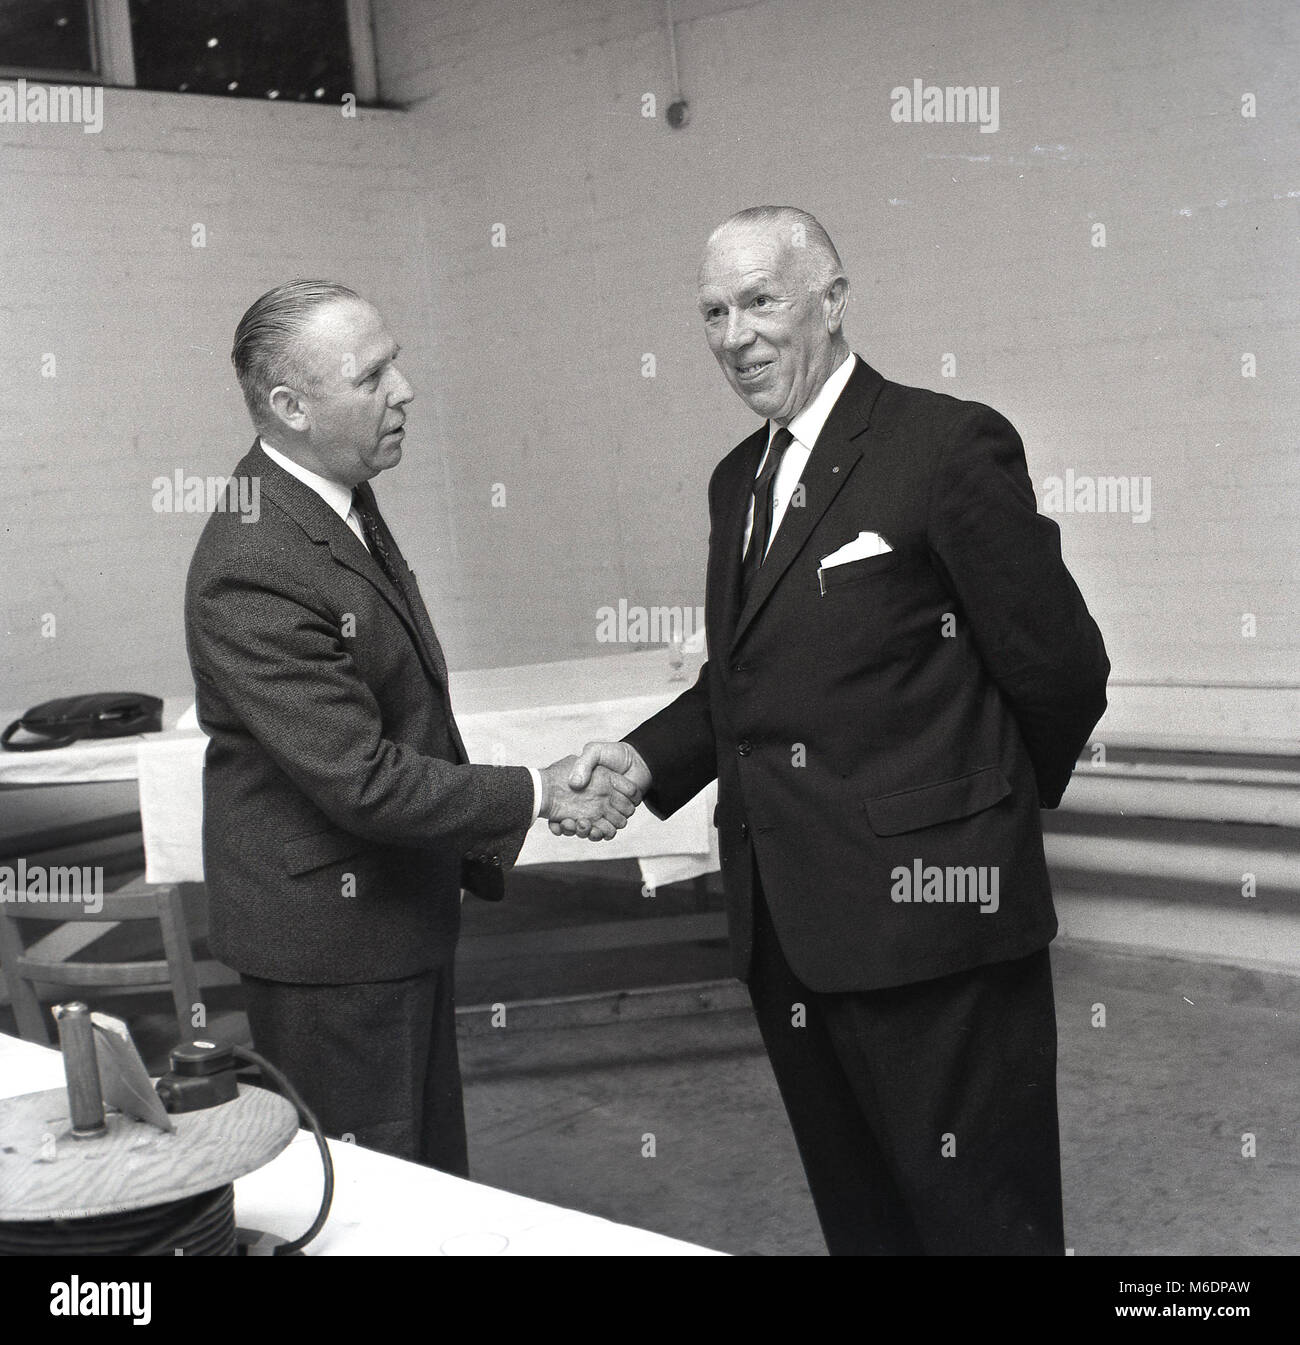 1960s, England, UK, picture shows two well-dressed men wearing suits standing up shaking hands. A firm handshake Stock Photo